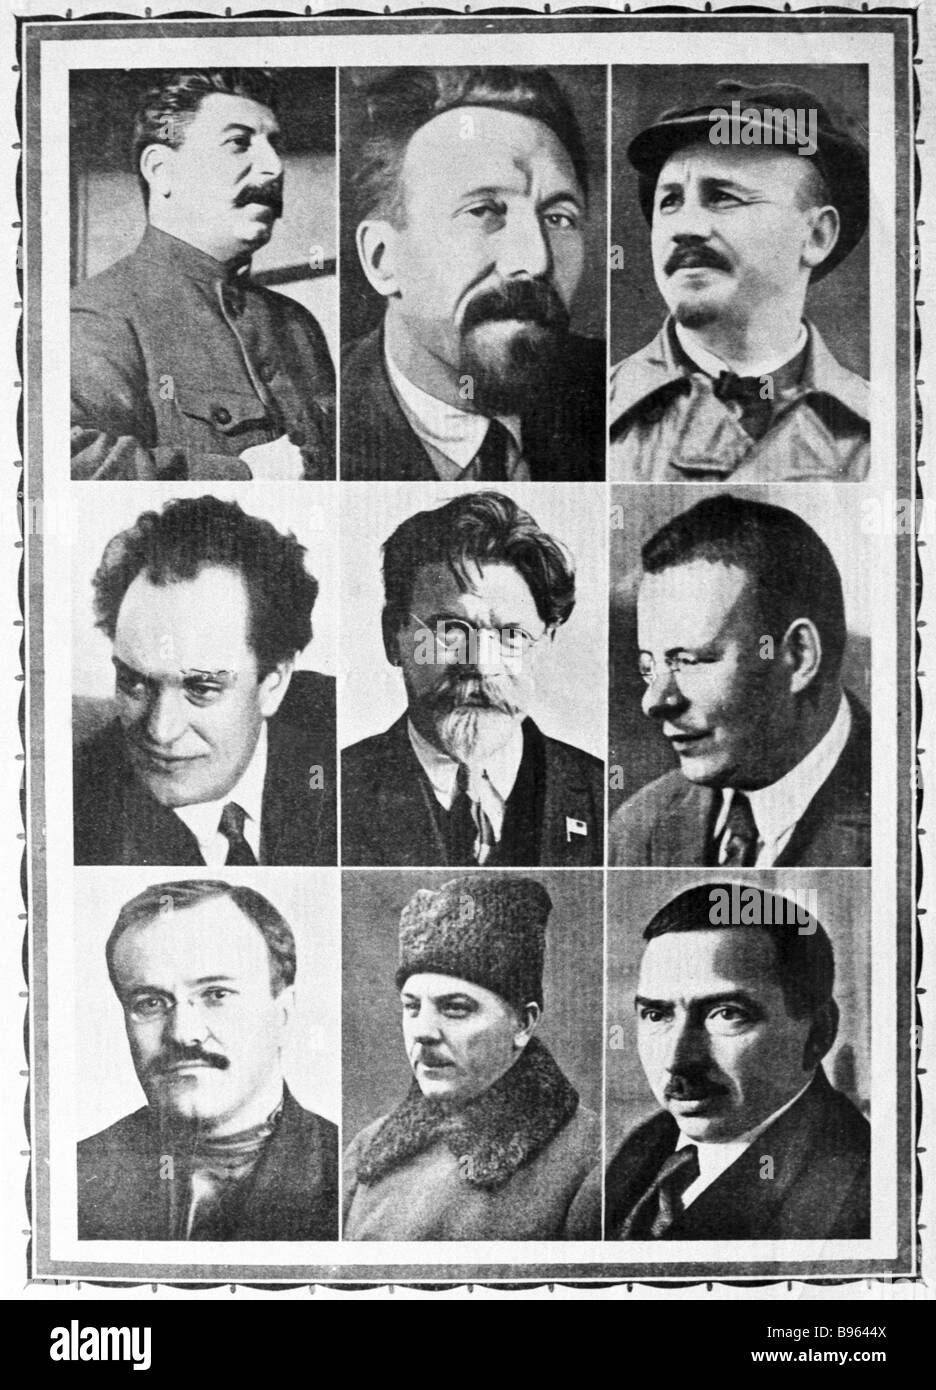 members of the politburo of the central committee of the